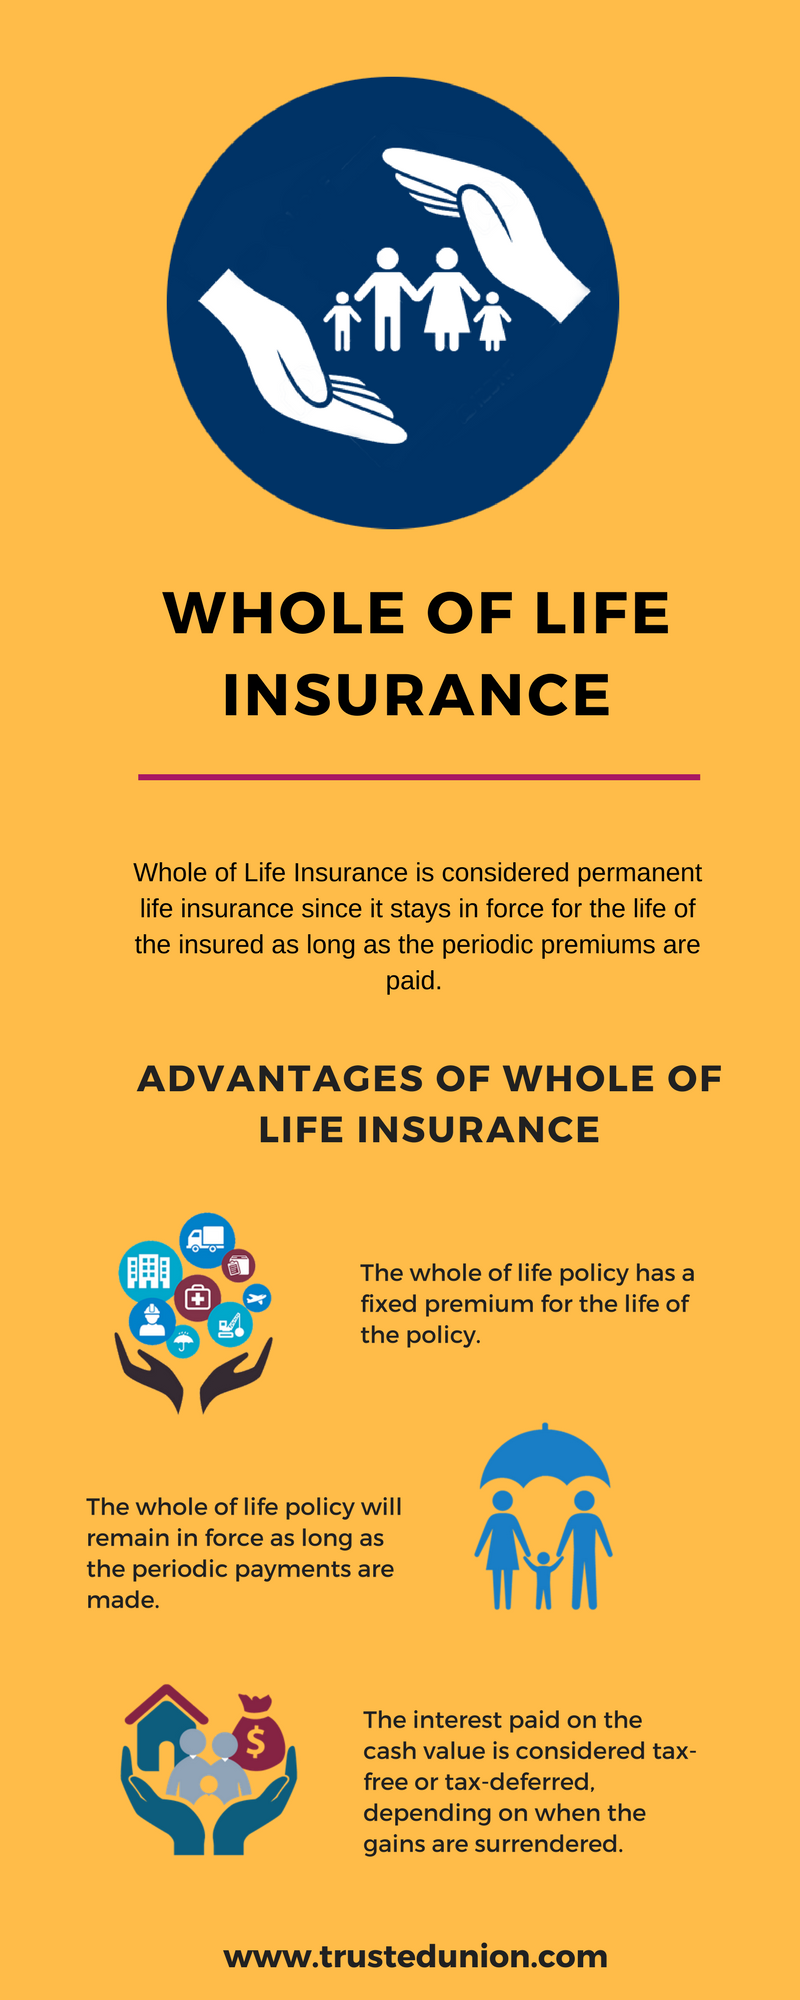 One Of The Most Popular Uses For Whole Of Life Insurance Is For